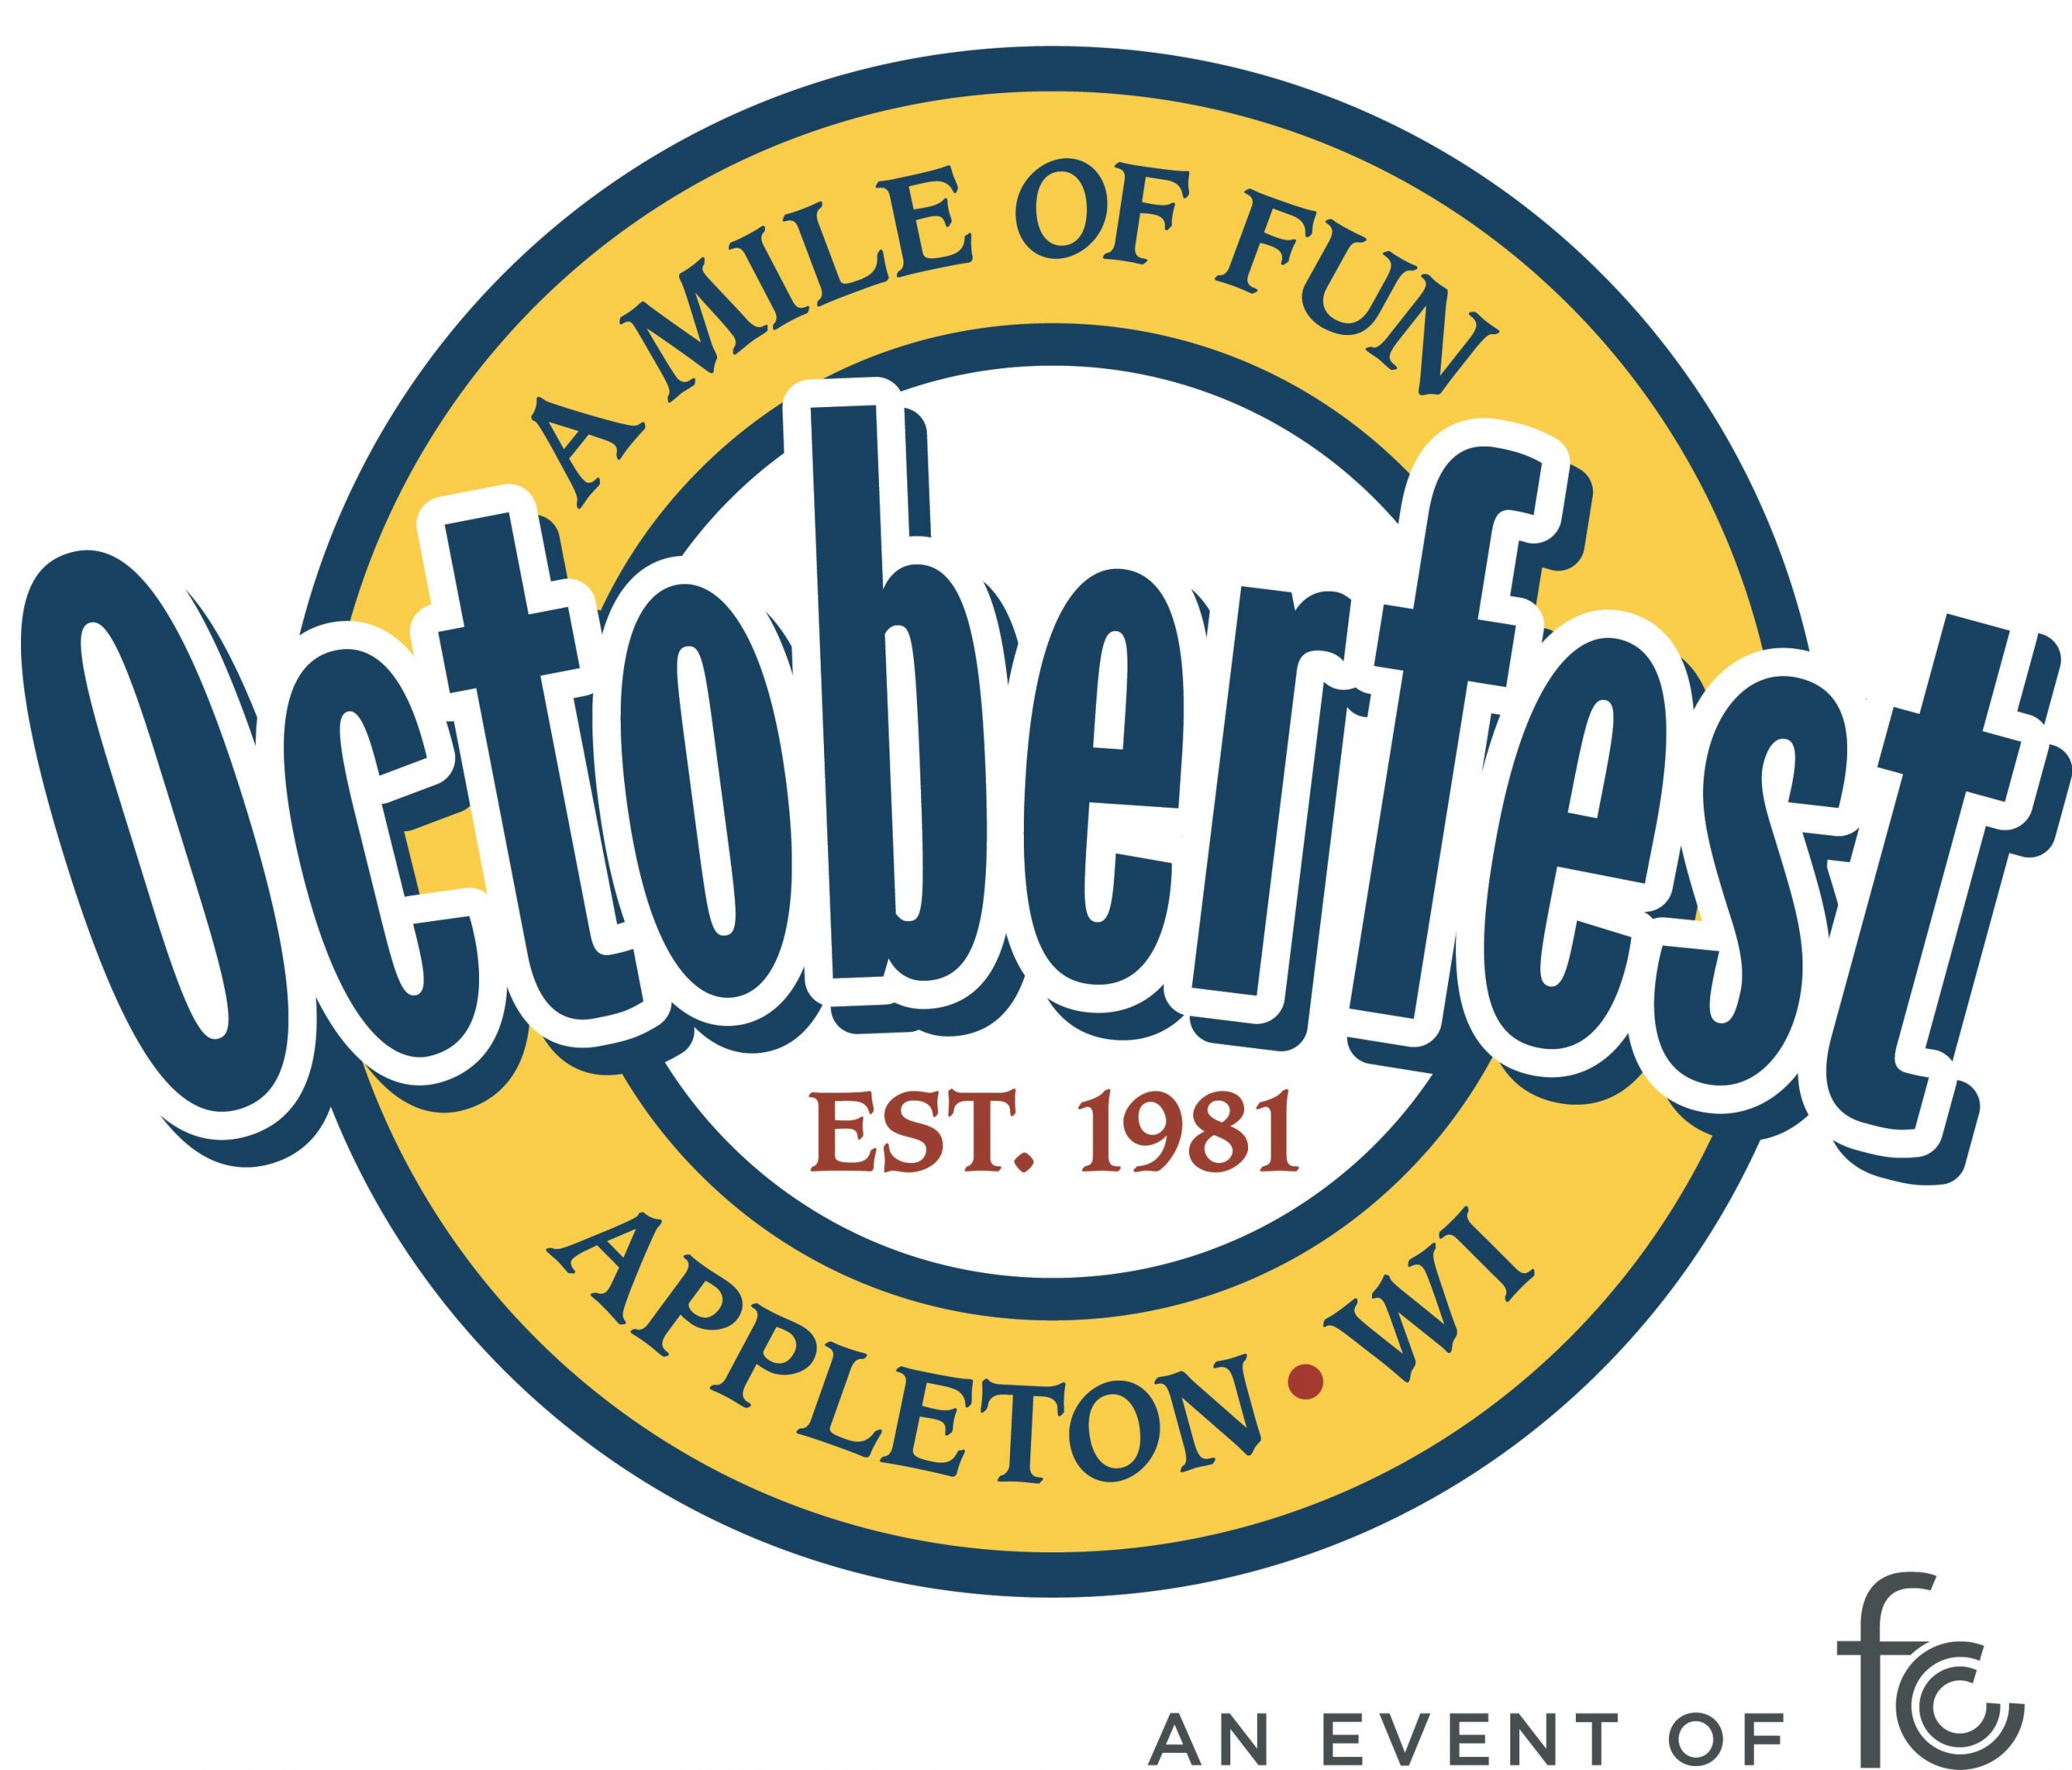 Octoberfest in Appleton starts tomorrow